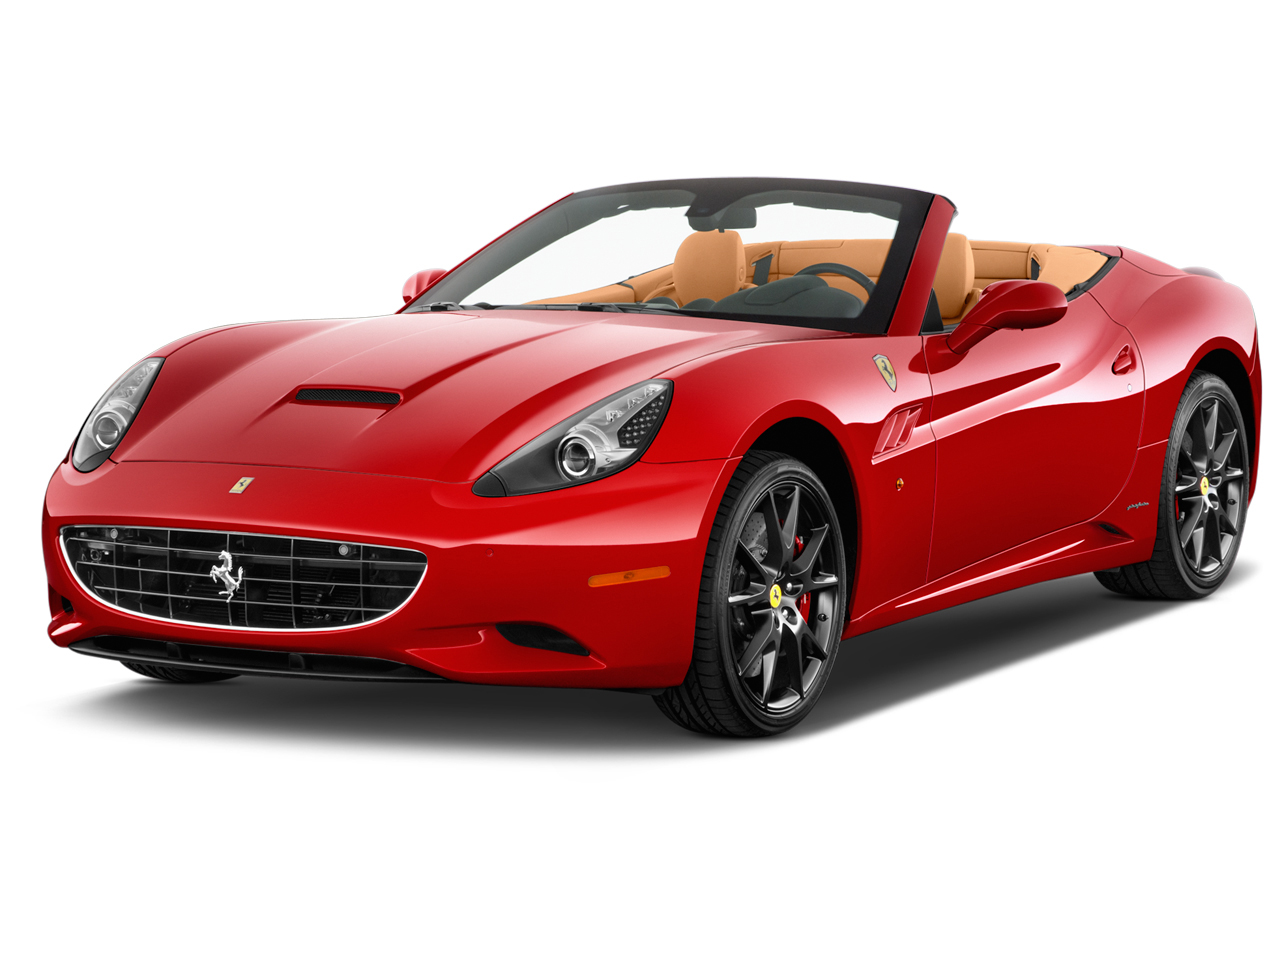 Image result for 2012 ferrari california